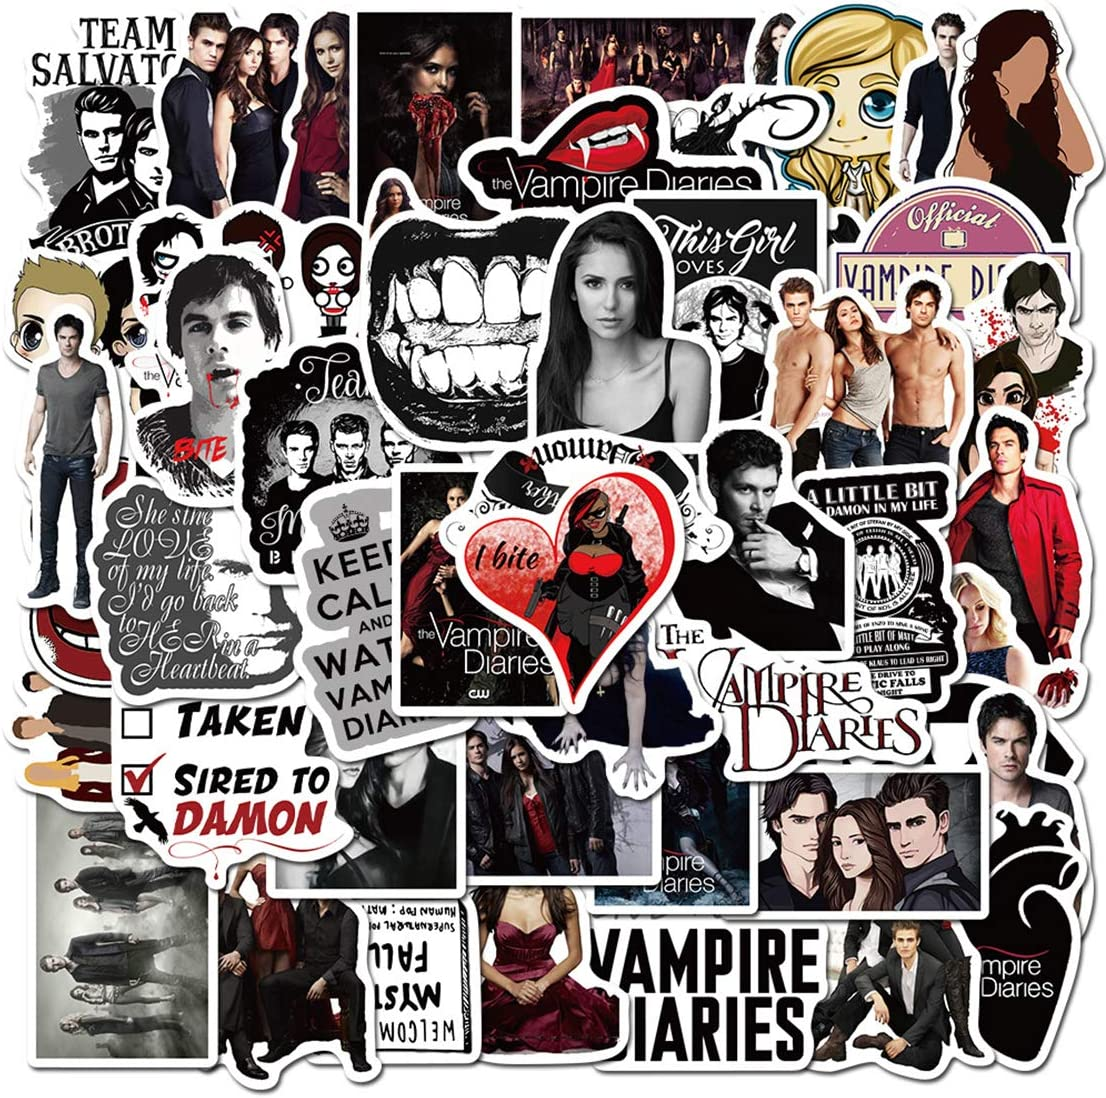 ARPA 50Pcs The Vampire Diaries Stickers for Laptops Books Cars Motorcycles Skateboards Bicycles Suitcases Skis Luggage Cup Hydro Flasks etc DJHSL